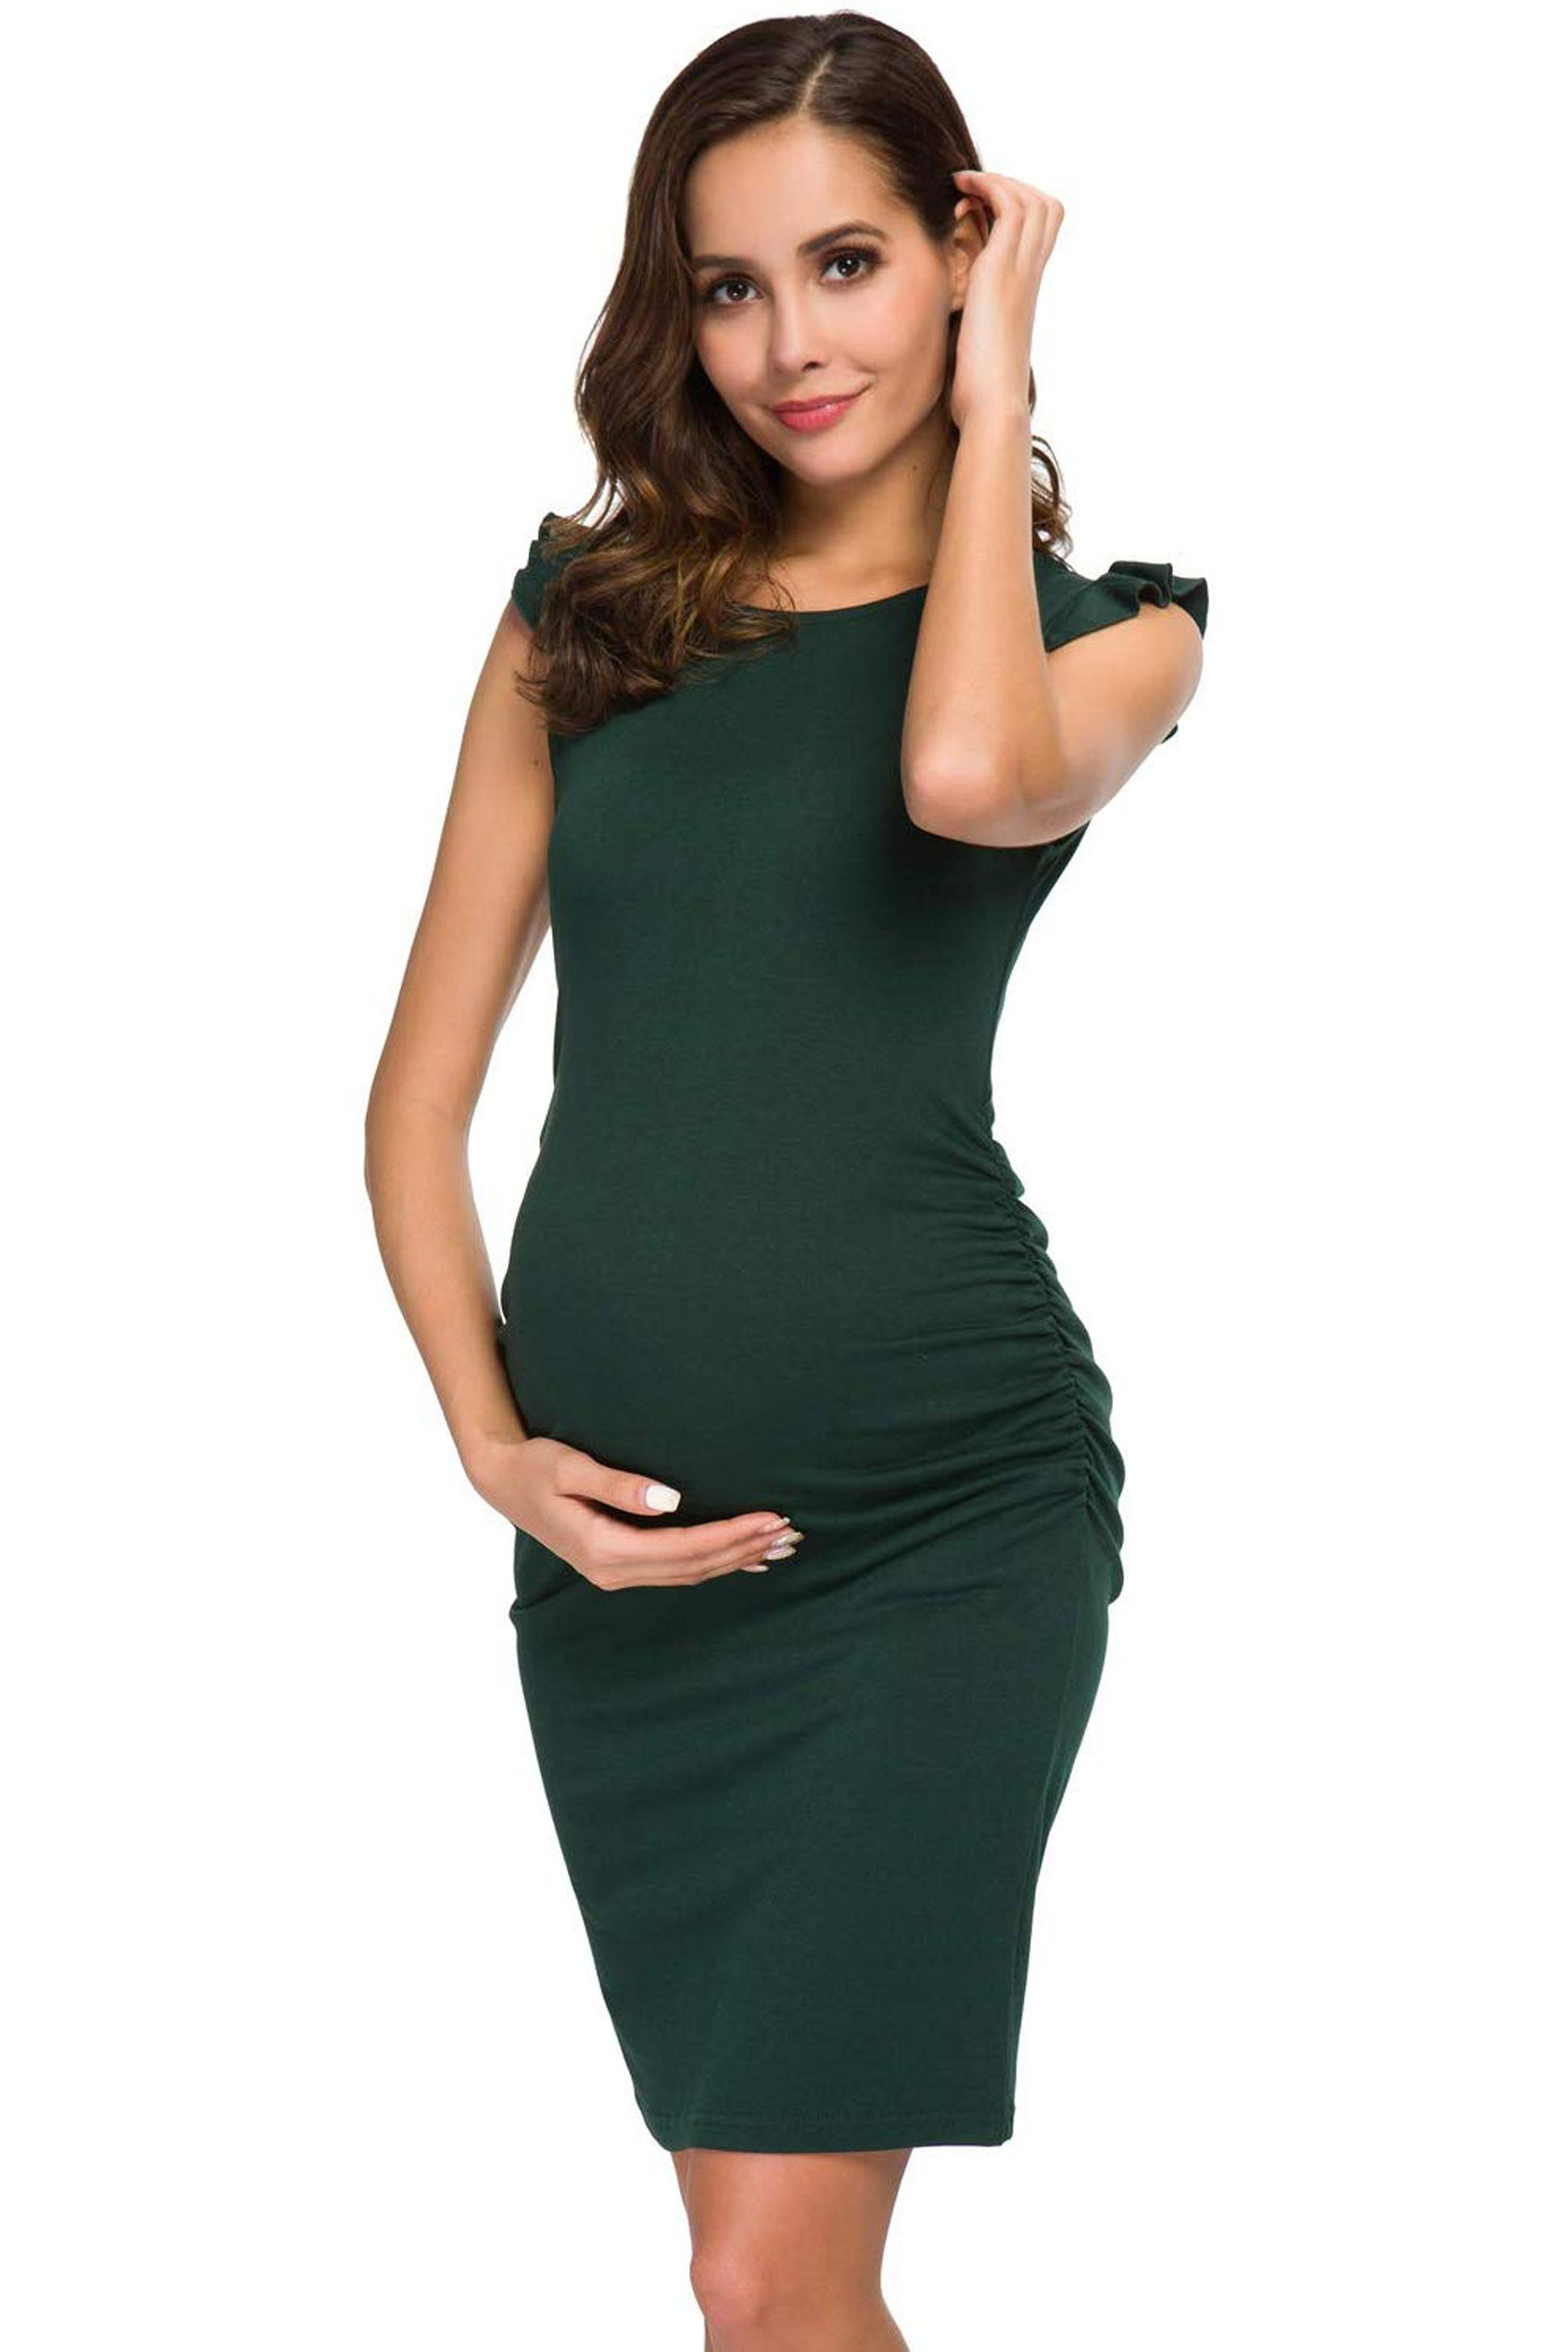 Cute Maternity Clothes And Stores To Shop 2021 Best Clothes For Pregnancy